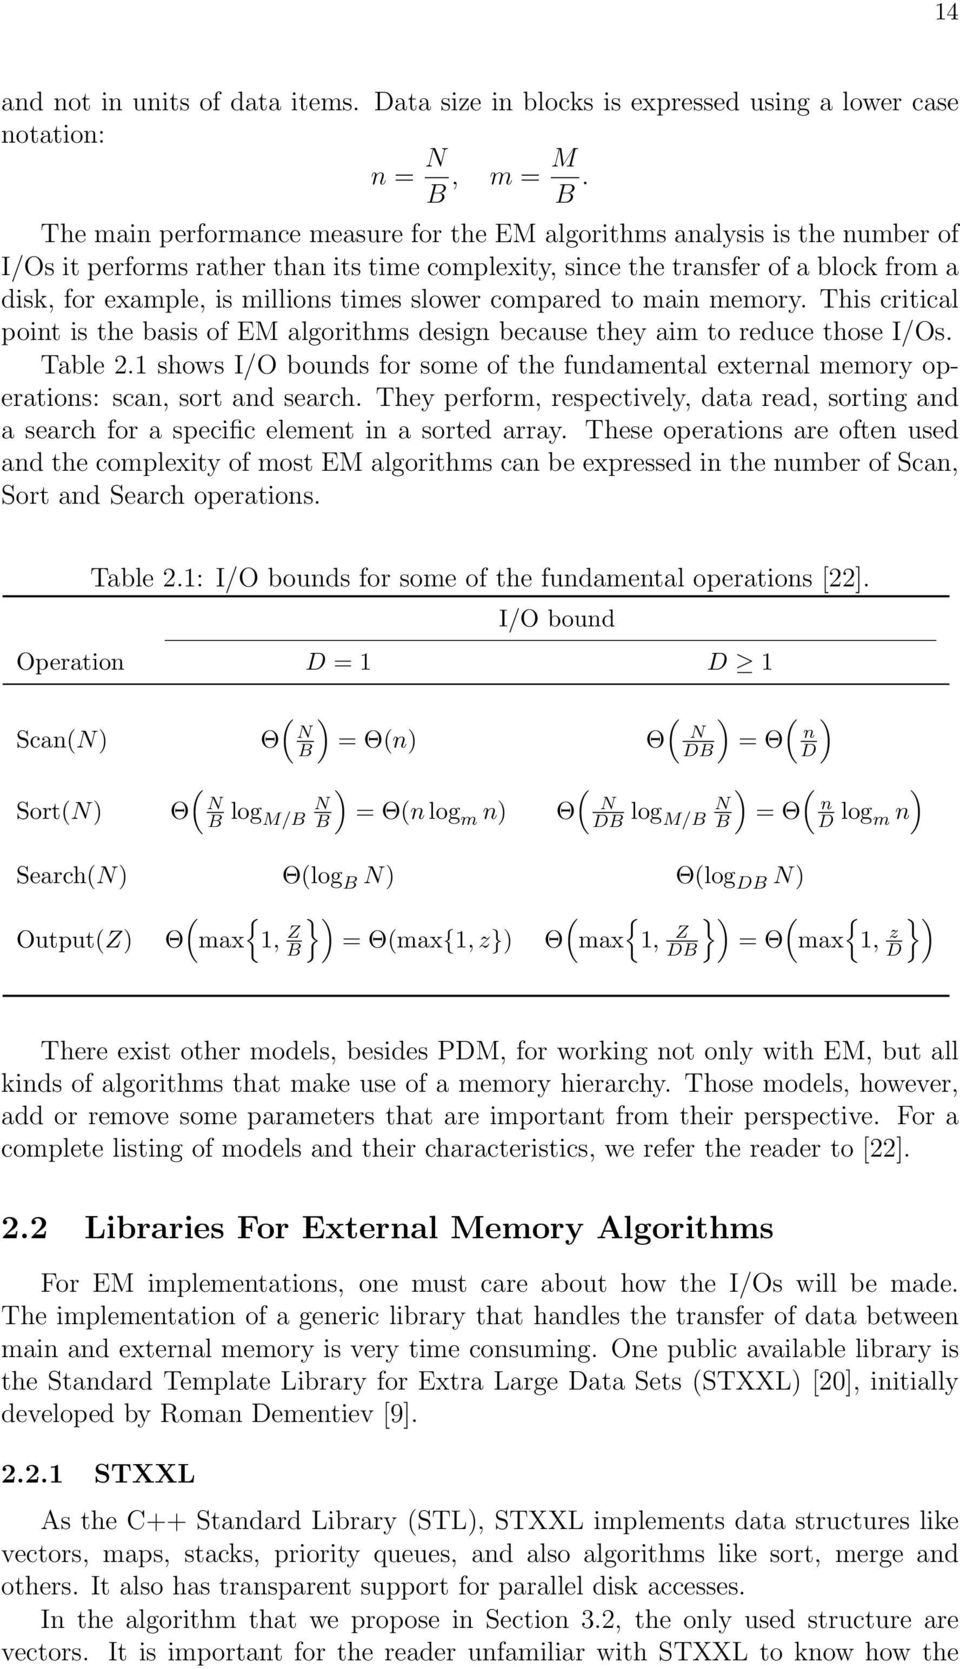 times slower compared to main memory. This critical point is the basis of EM algorithms design because they aim to reduce those I/Os. Table 2.